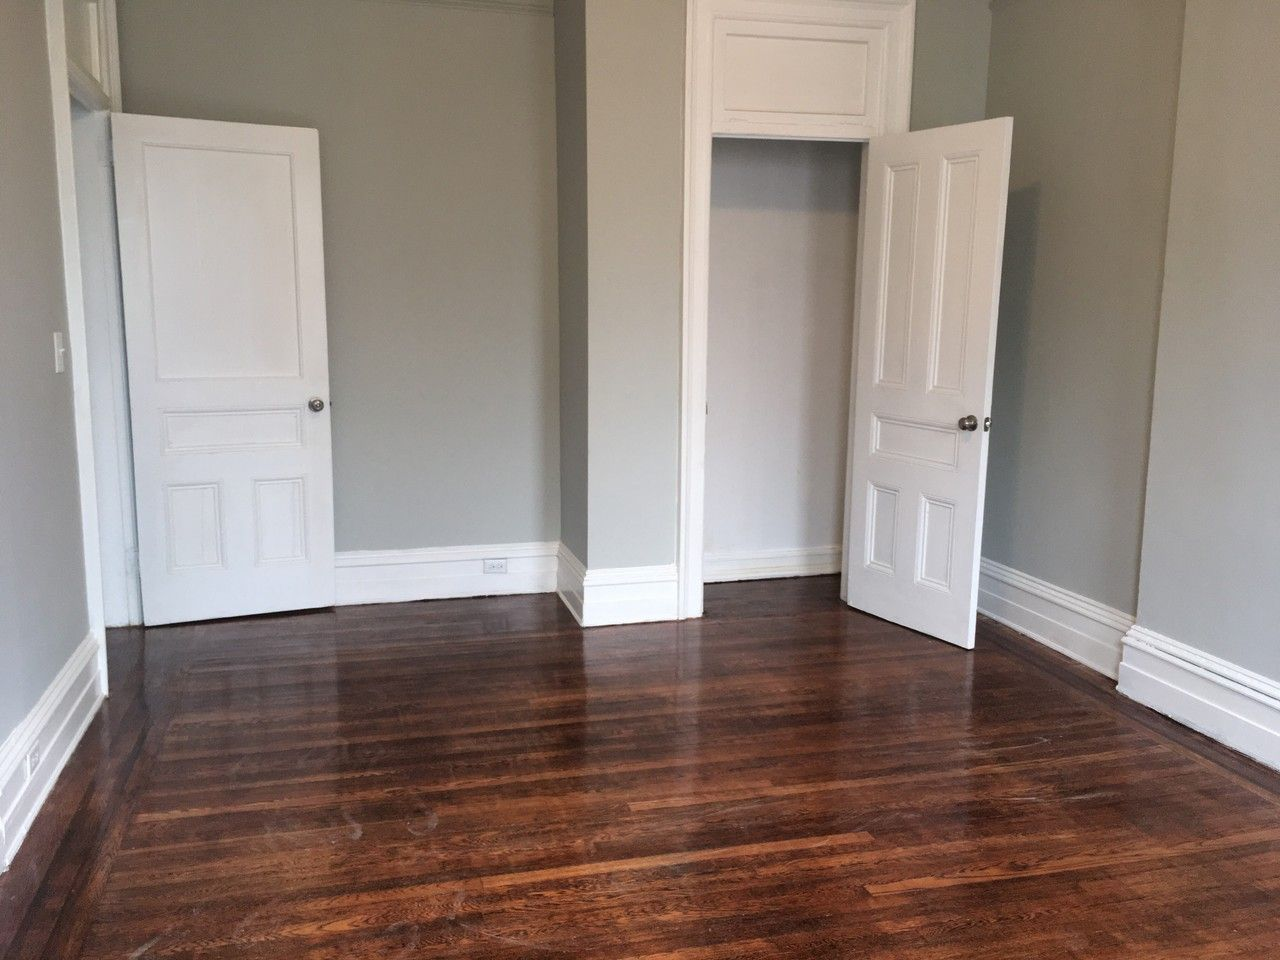 63 Water St Staten Island Ny 10304 Us New York Ny 10304 3 Bedroom Apartment For Rent For 2 500 Month Zumper